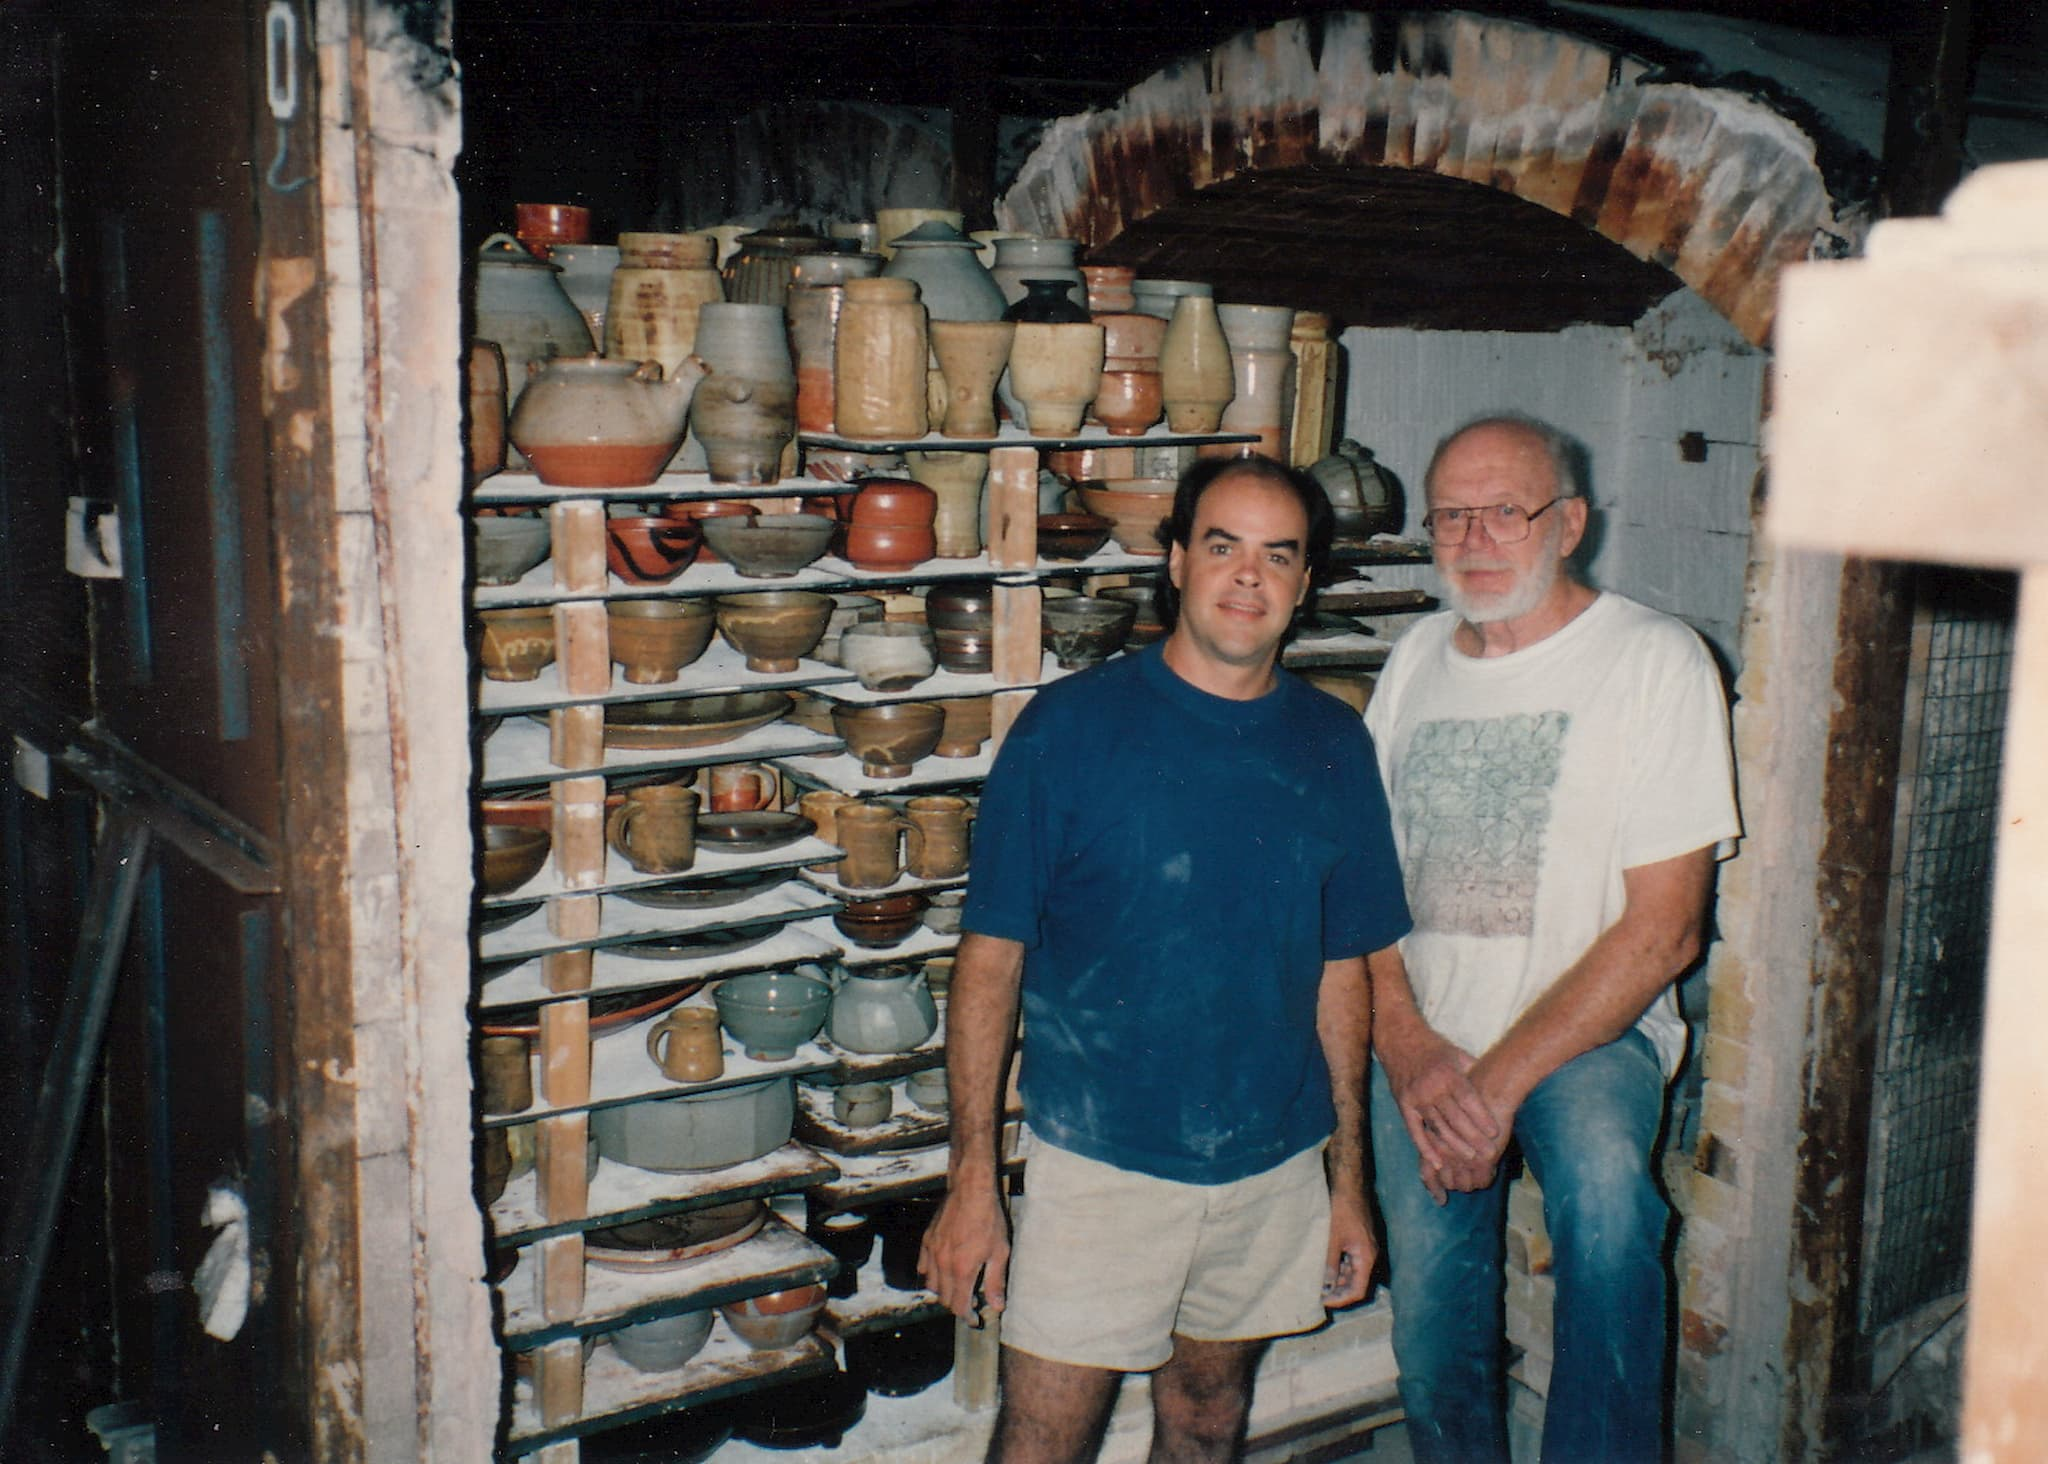 Guillermo Cuellar & Warren MacKenzie post-firing in Stillwater, MN. Courtesy of Guillermo Cuellar